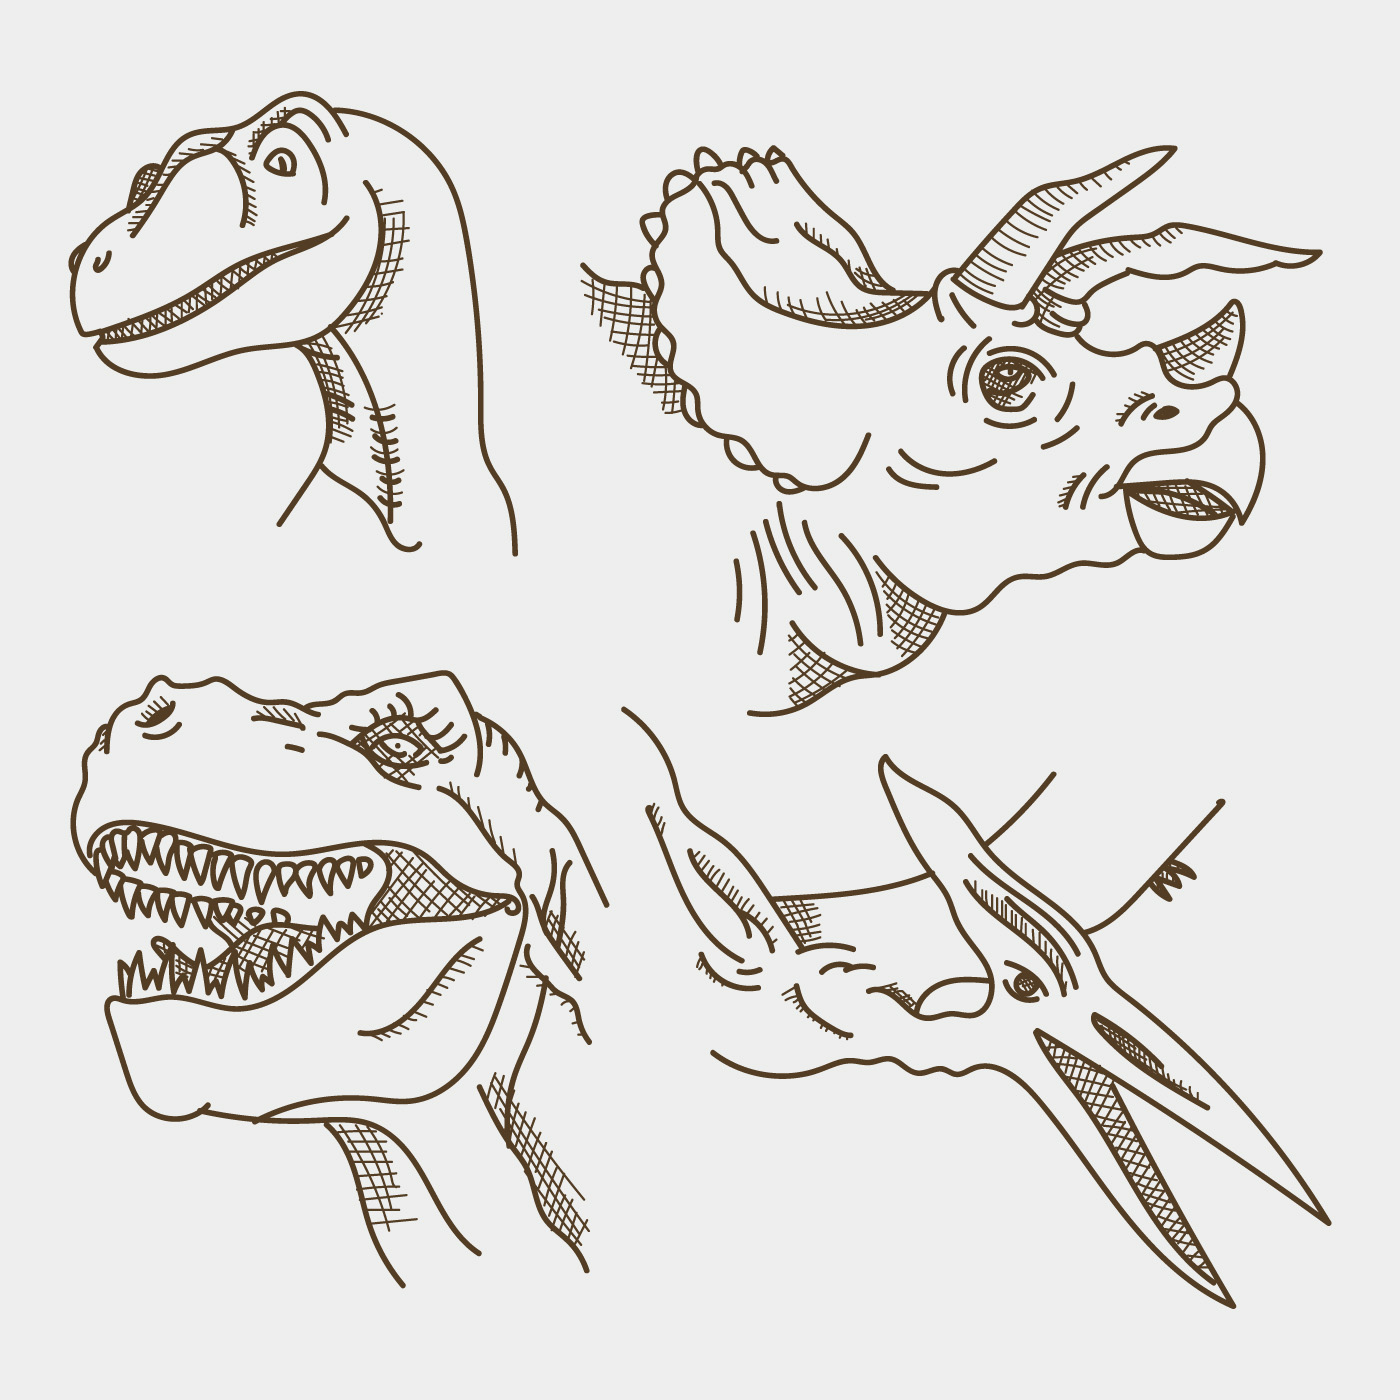 Caras Realistas De Dinosaurios Descargar Vectores Gratis Illustrator Graficos Plantillas Diseno Download 2 dinosaurios stock illustrations, vectors & clipart for free or amazingly low rates! https es vecteezy com arte vectorial 232584 caras realistas de dinosaurios